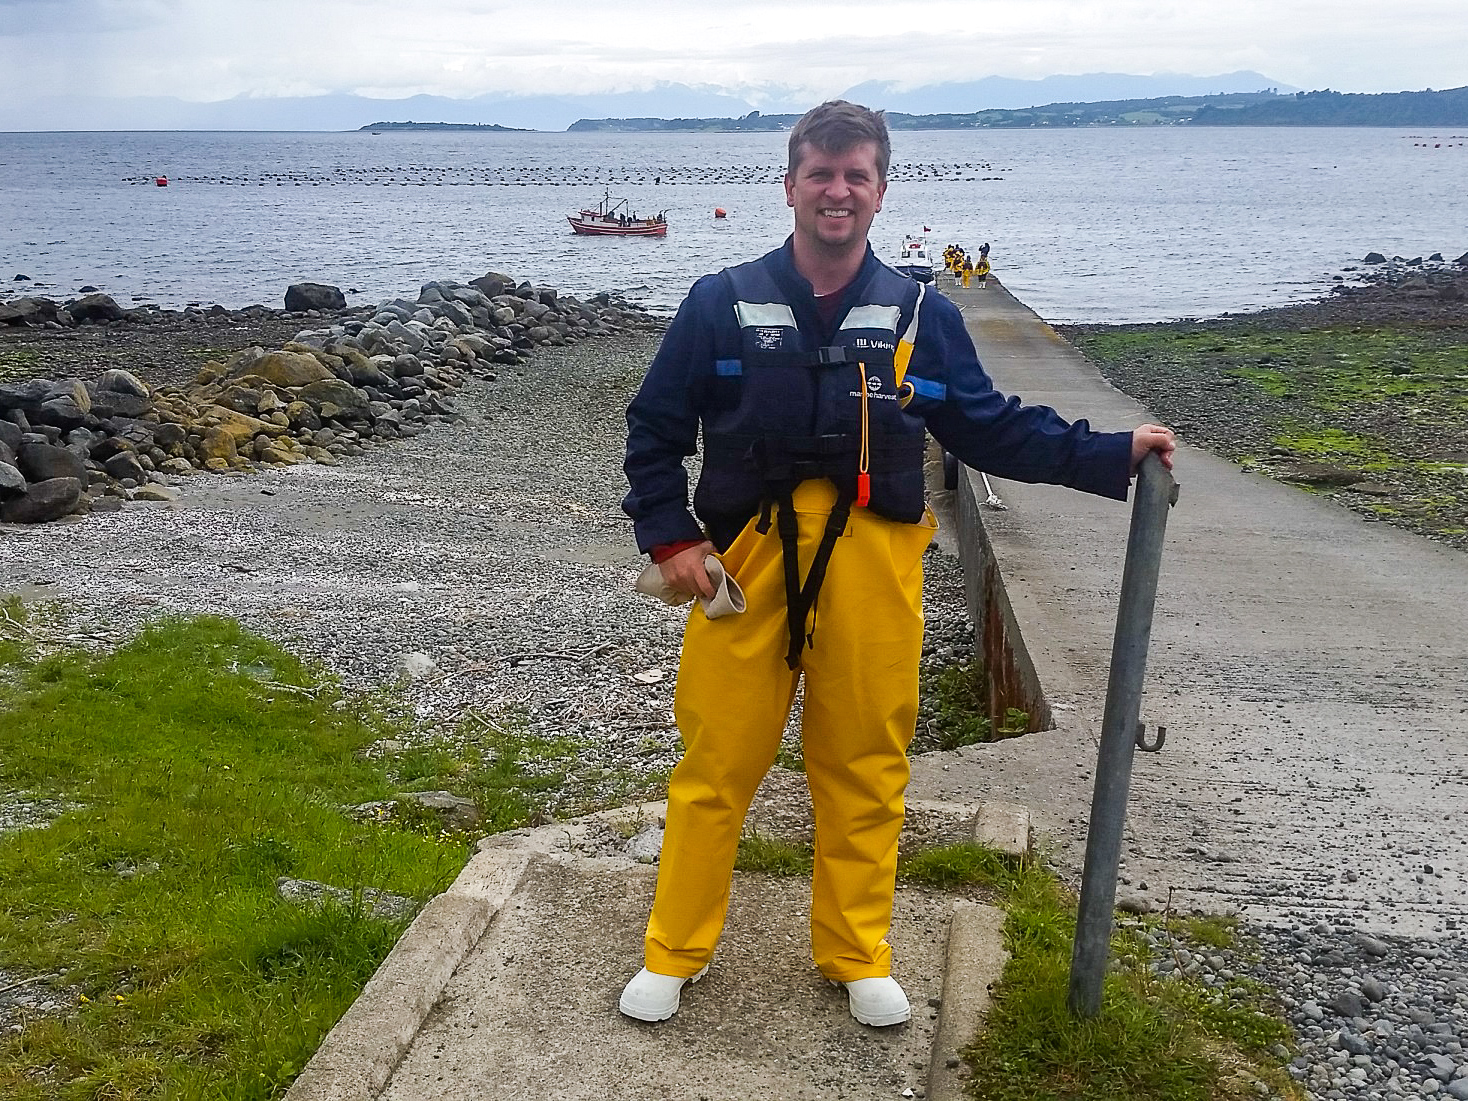 Gil Patterson standing in front of aquaculture farms